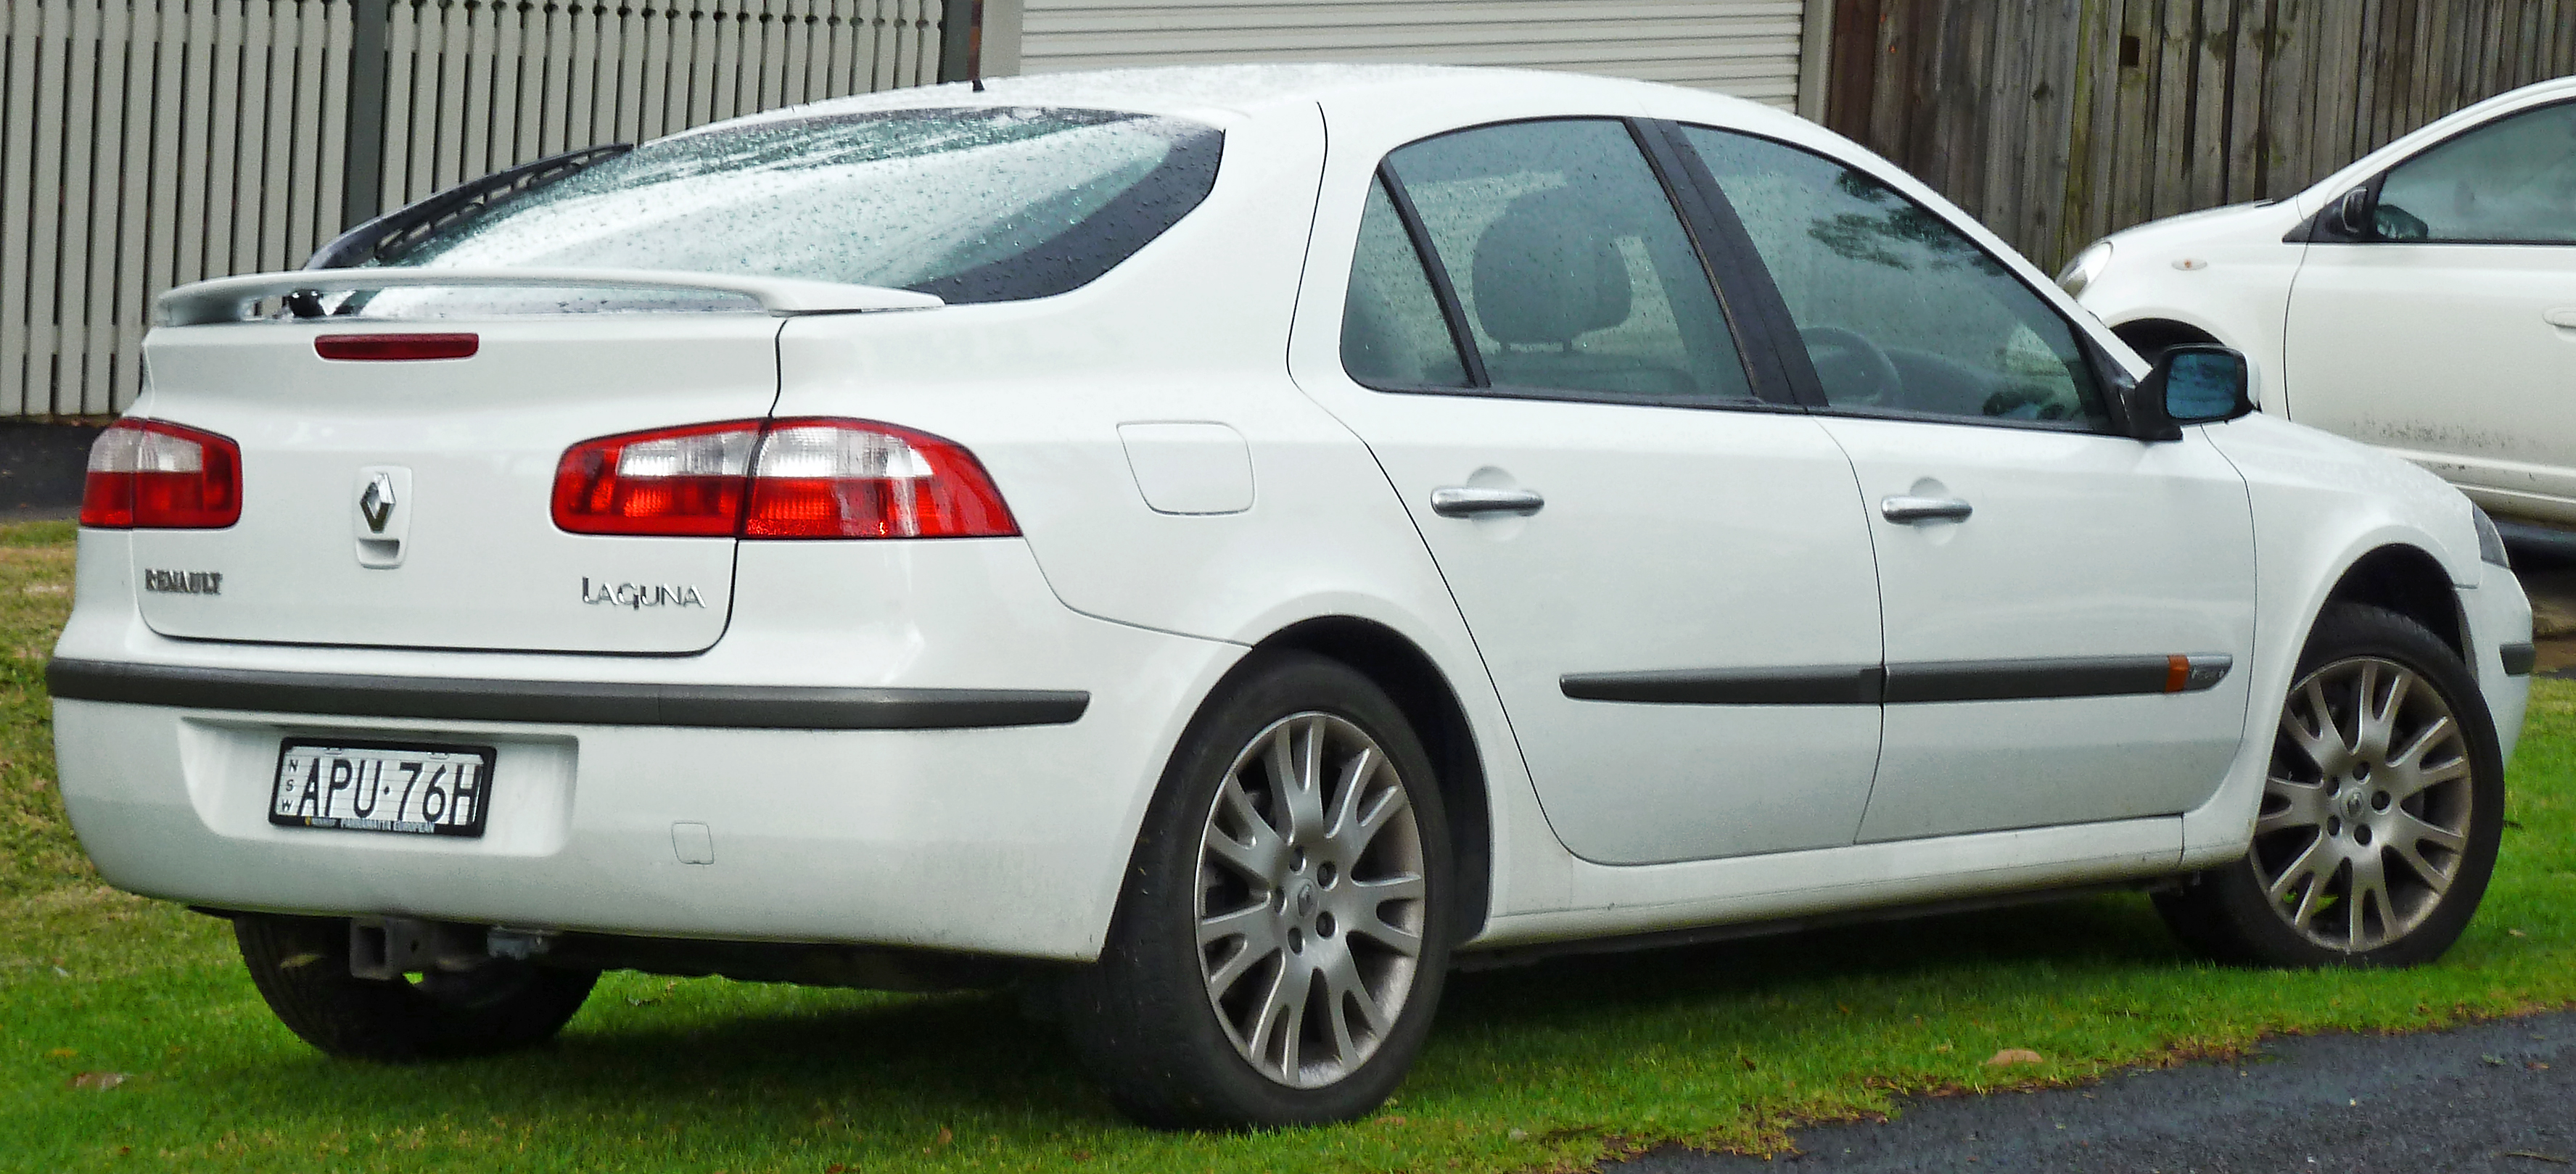 2002 Renault Laguna Ii Pictures Information And Specs